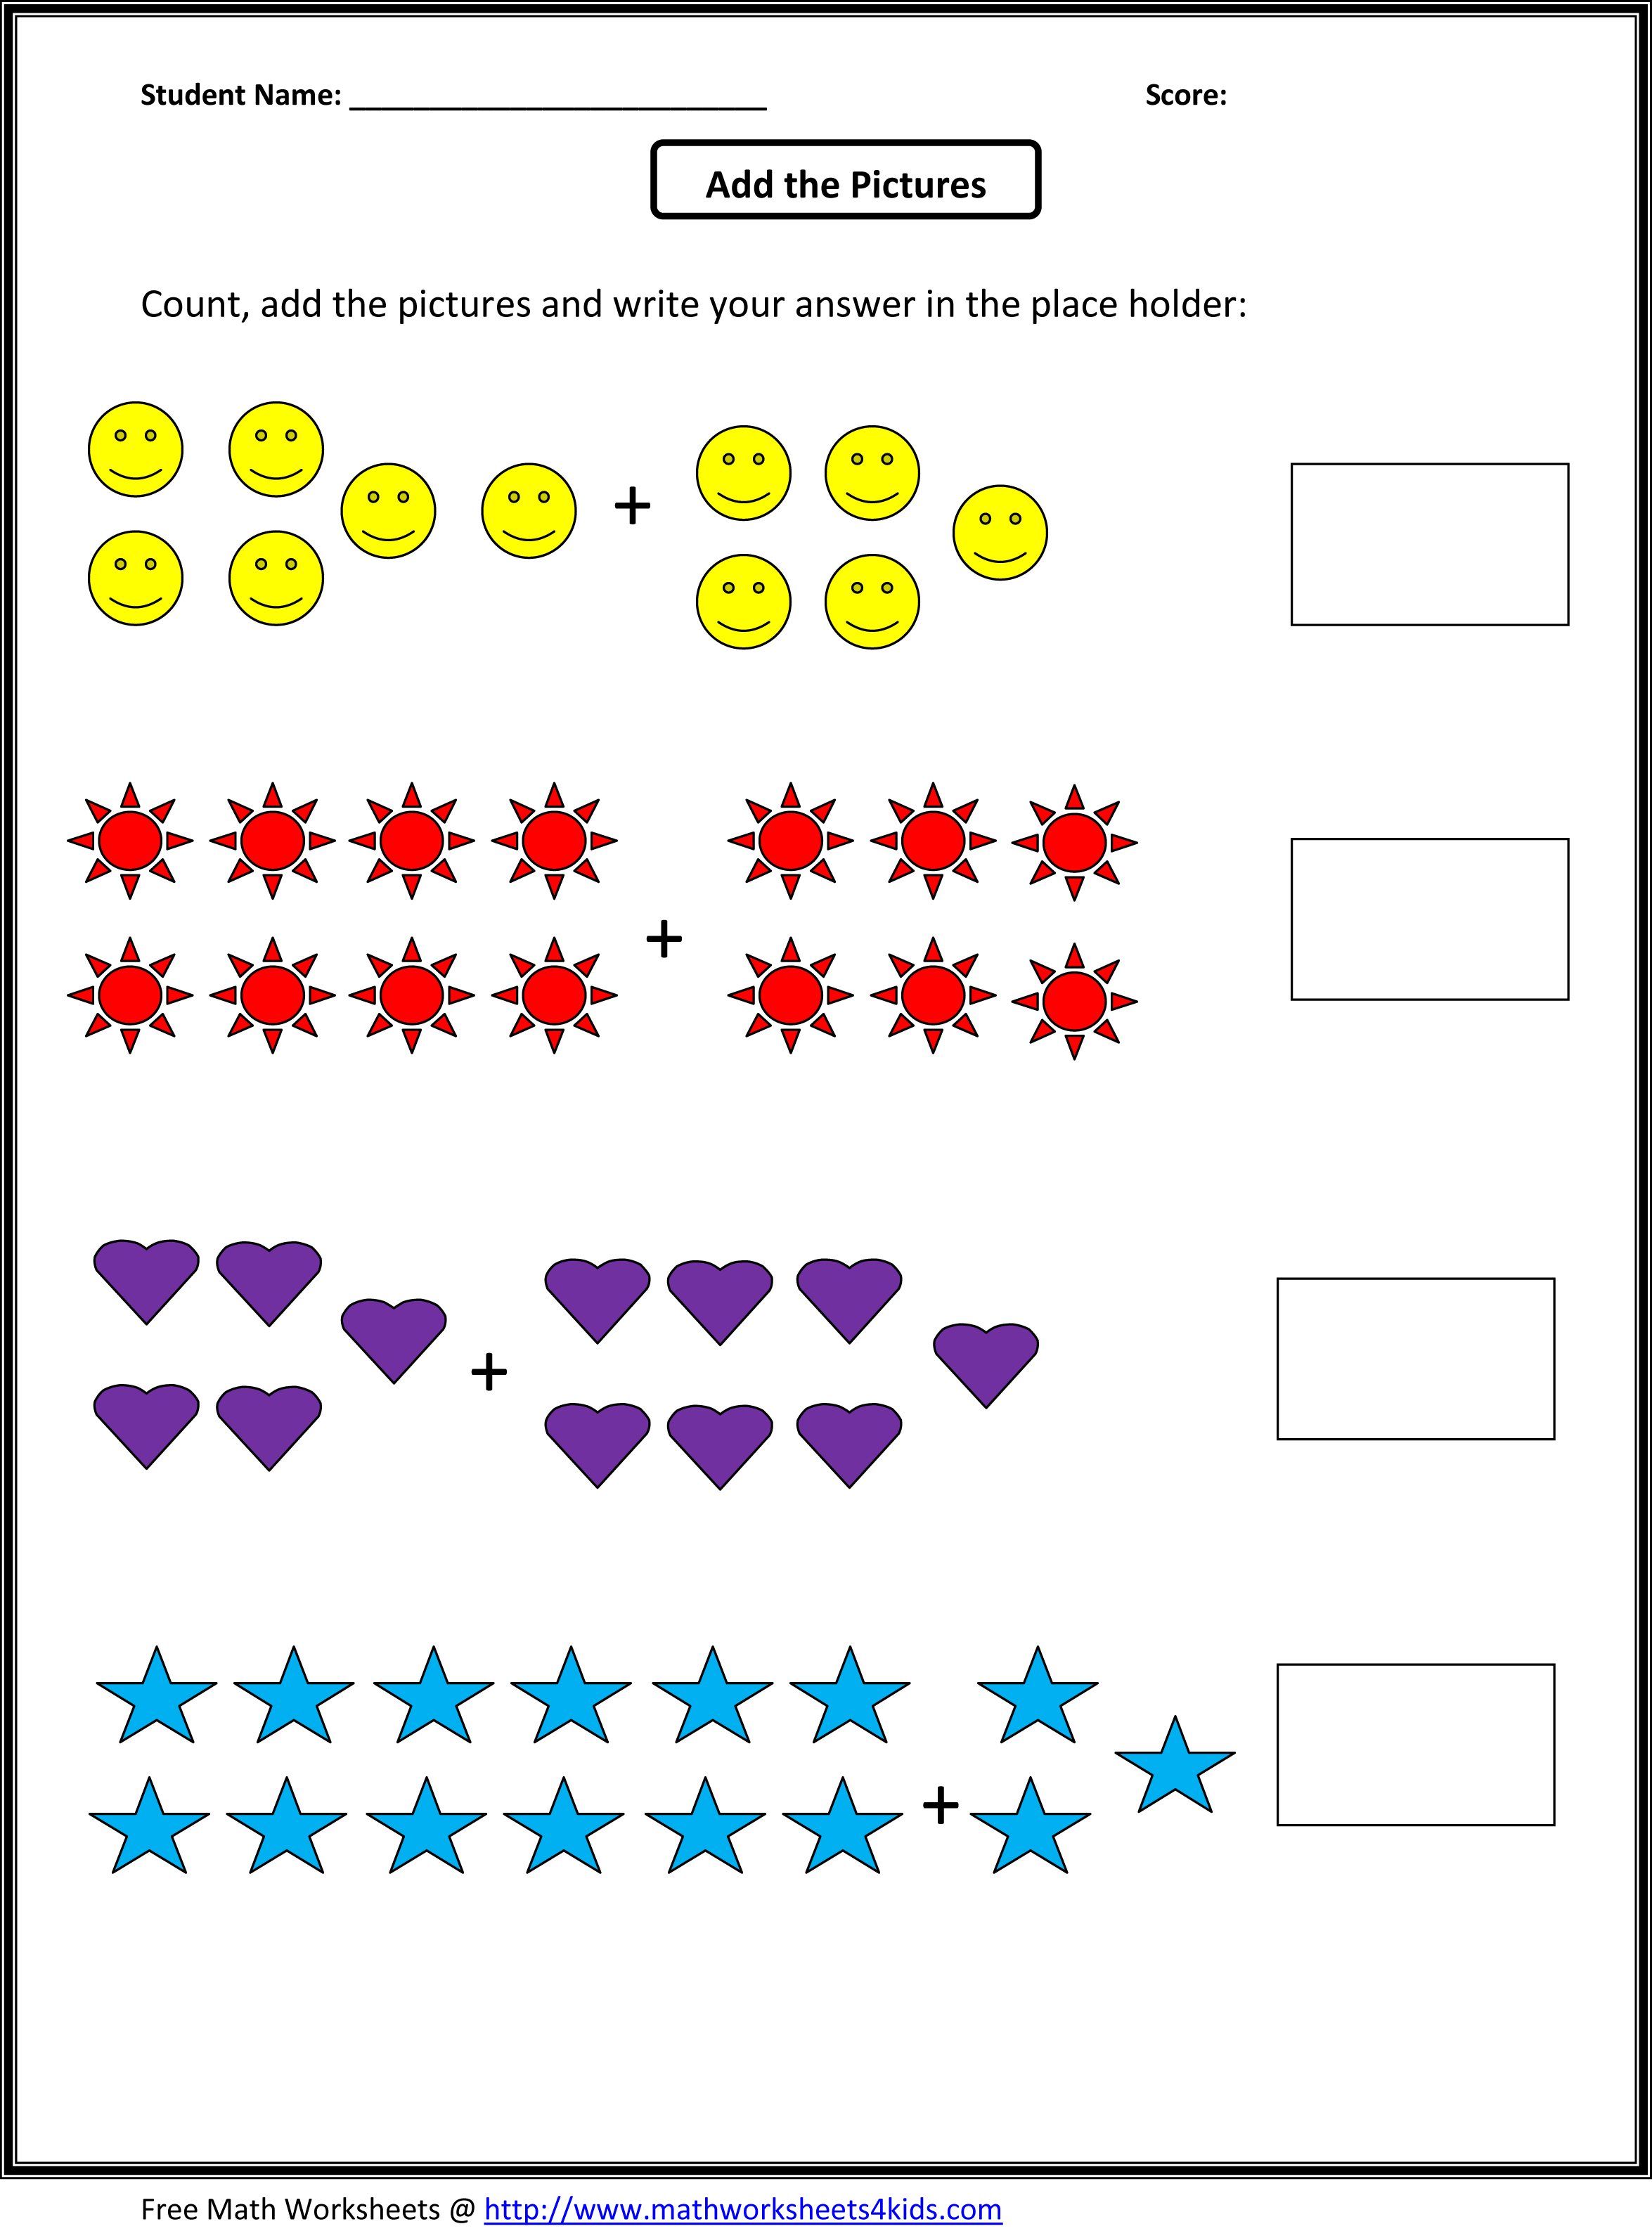 Weirdmailus  Unusual Grade  Maths Worksheet  Reocurent With Extraordinary Math Worksheets For St Grade Free  Reocurent With Appealing Spanish Weather Worksheet Also Preschool Homework Worksheets In Addition Map Legend Worksheet And St Grade Reading Worksheets Free Printable As Well As Coloring Worksheets For Nd Grade Additionally Financial Peace University Worksheets From Reocurentcom With Weirdmailus  Extraordinary Grade  Maths Worksheet  Reocurent With Appealing Math Worksheets For St Grade Free  Reocurent And Unusual Spanish Weather Worksheet Also Preschool Homework Worksheets In Addition Map Legend Worksheet From Reocurentcom